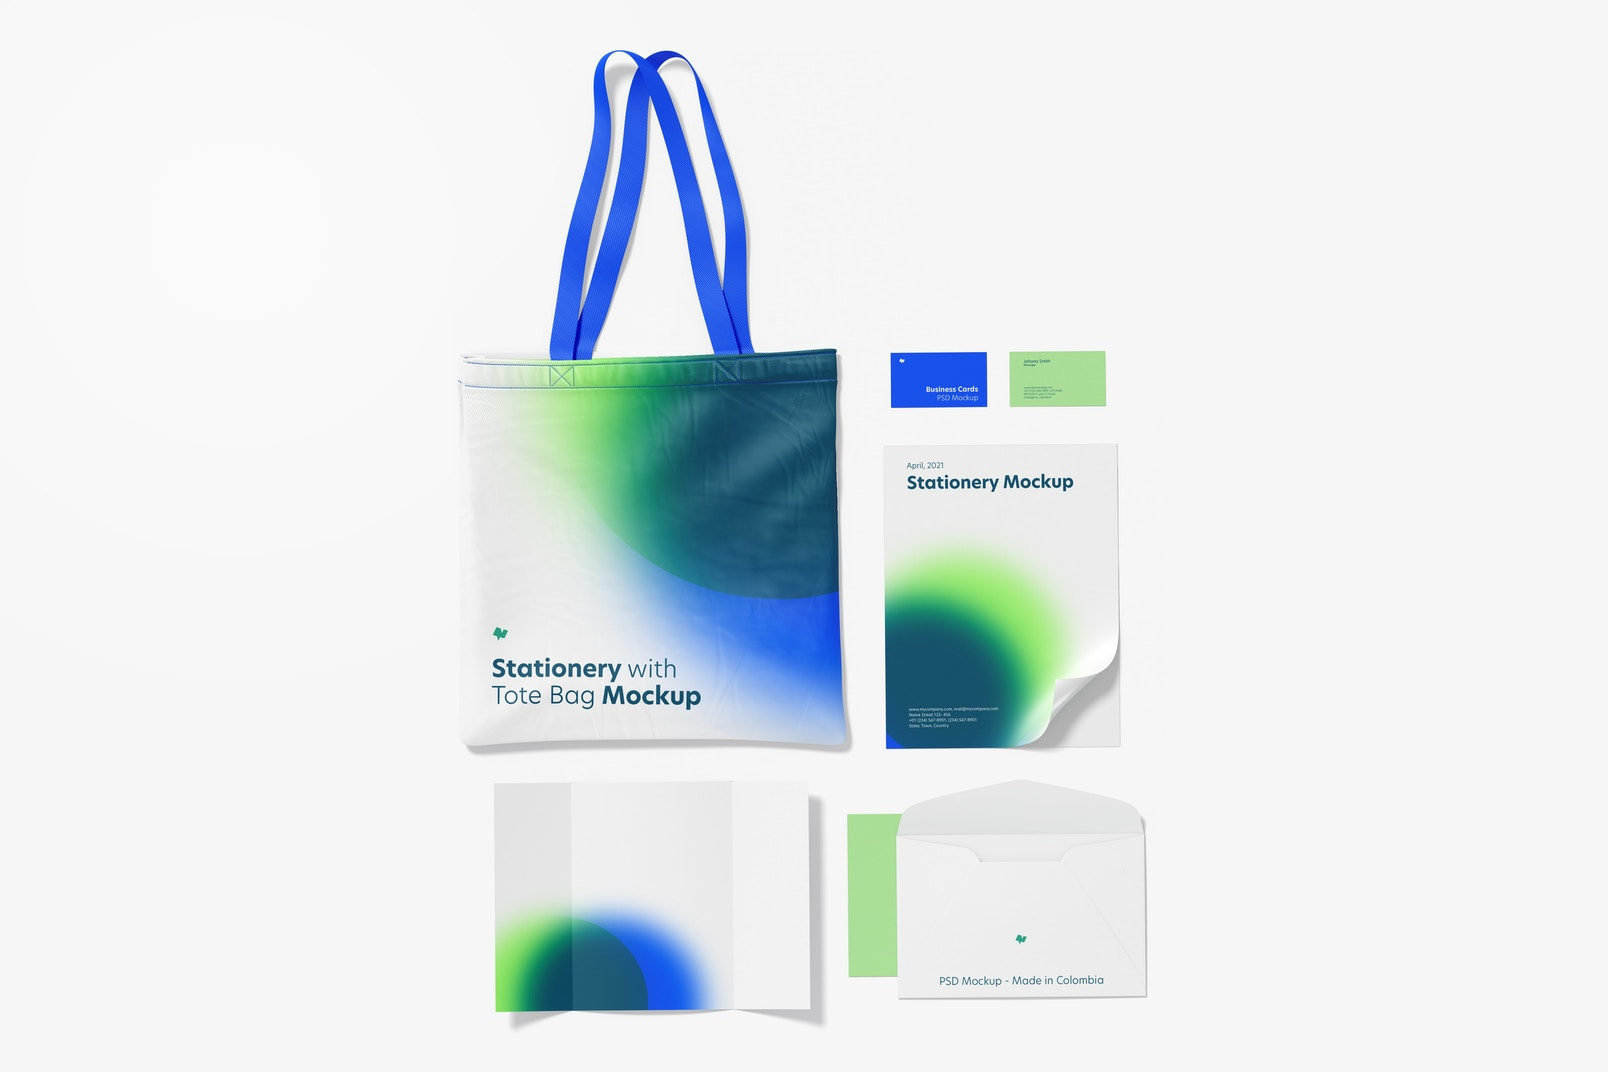 Stationery with Tote Bag Mockup, Top View